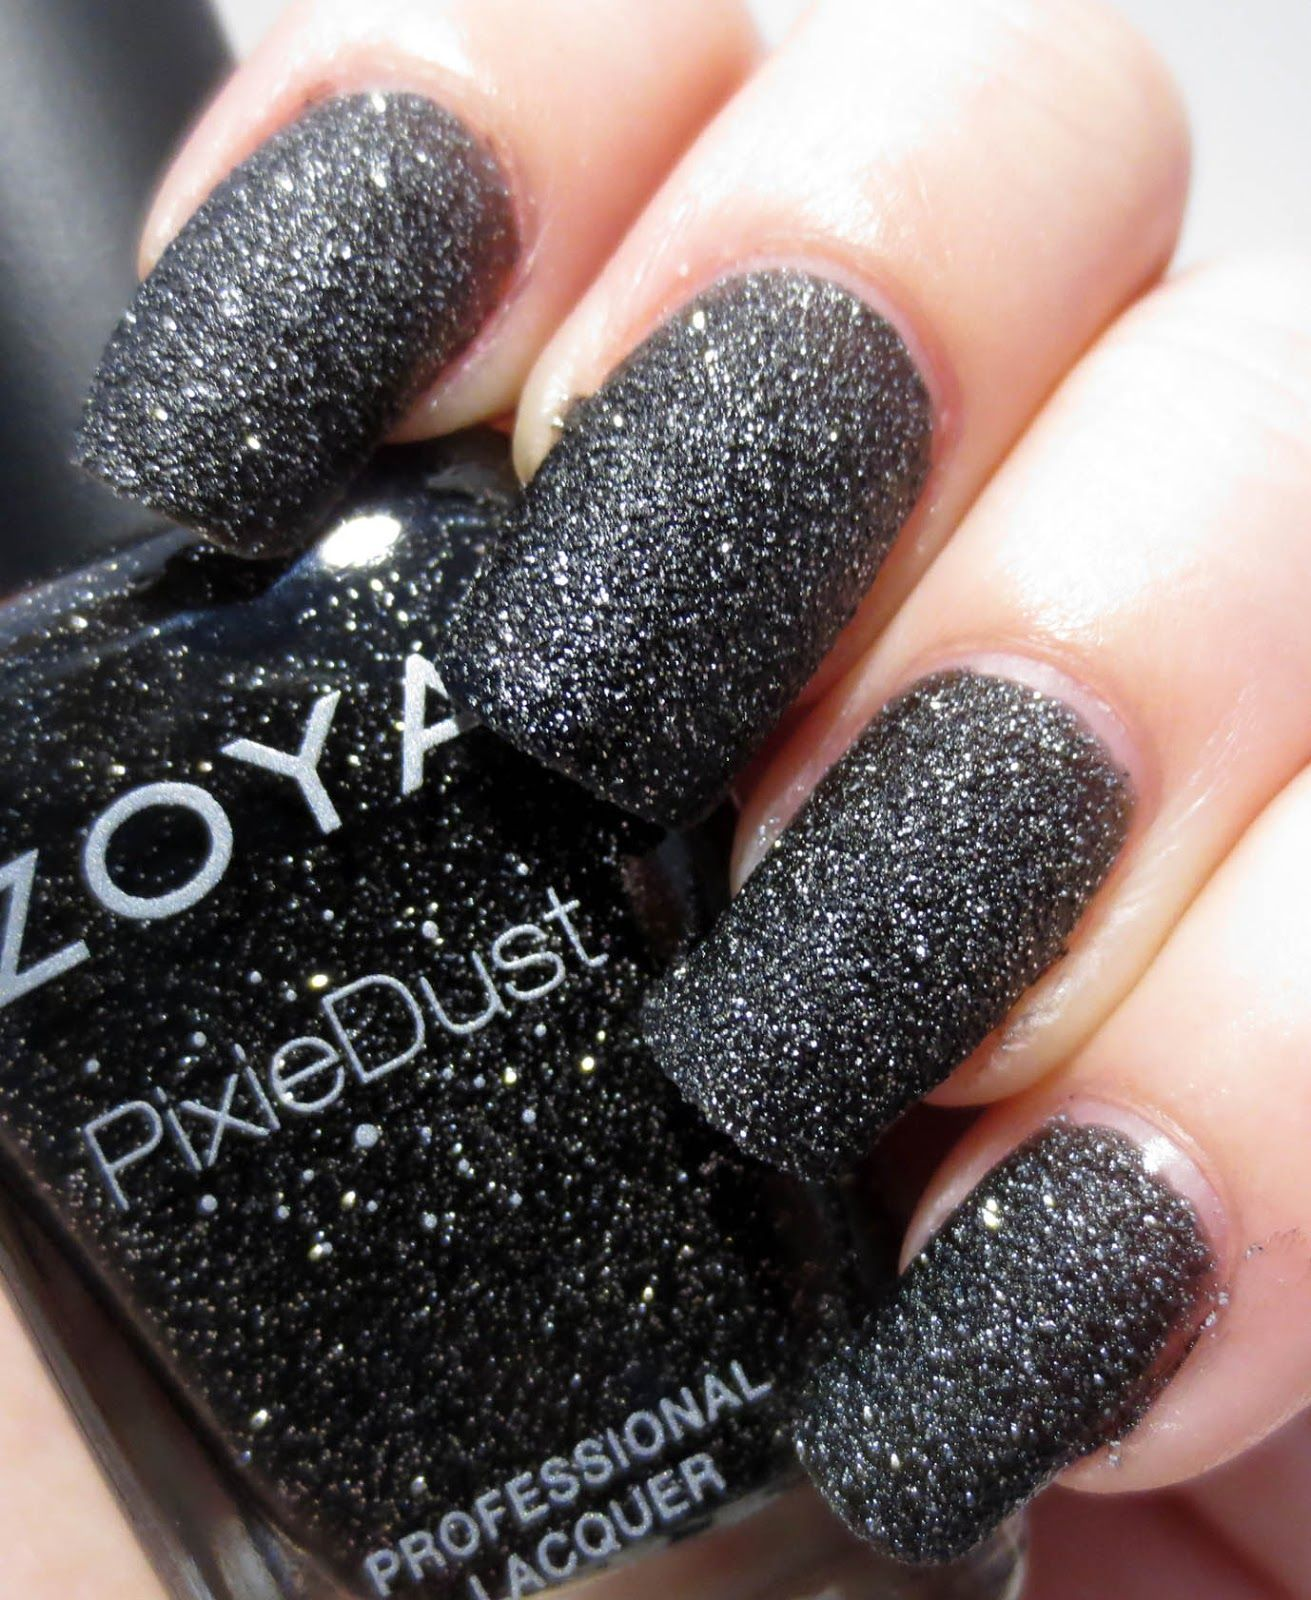 Zoya pixiedust in dahlia the ultimate textured sparkling matte nail polish it s like lava